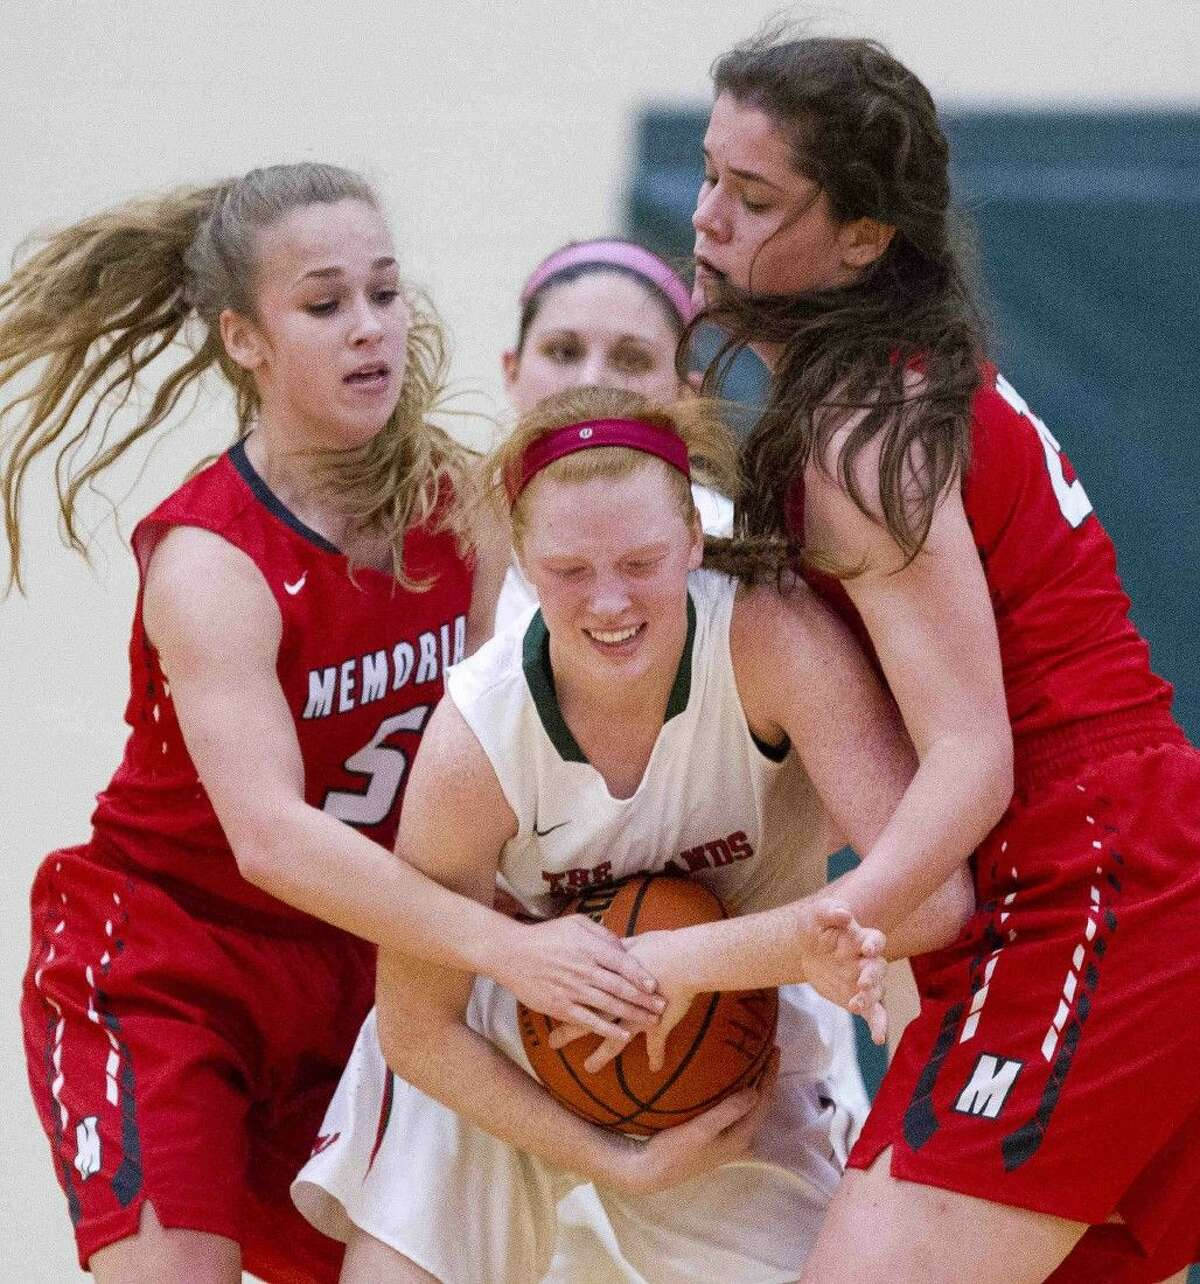 The Woodlands forward Madison Mcgurrin fights Memorial guard Kelsey Slattery and forward Elizabeth Eubank for control of a loose ball during a high school basketball game Tuesday, Nov. 24, 2015, in The Woodlands. Go to HCNpics.com to view more photos of the game.